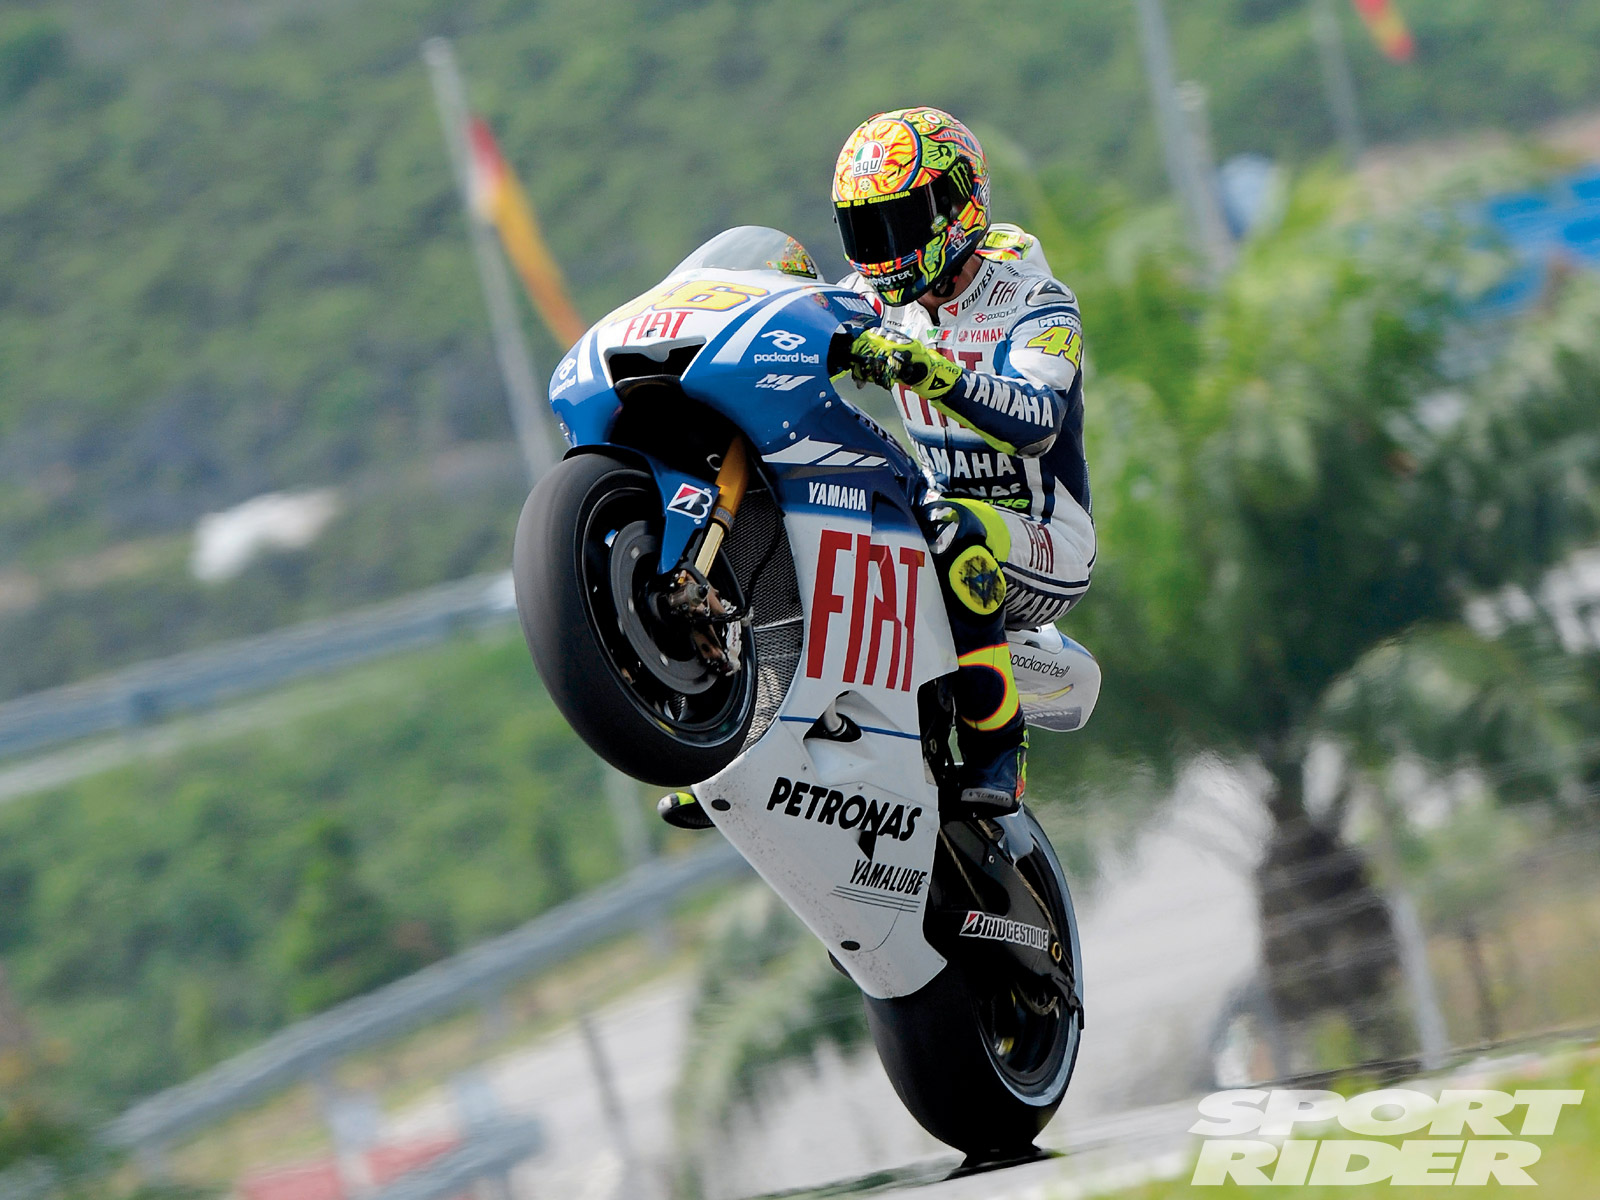 michael jordan valentino rossi wheelie pictures. Black Bedroom Furniture Sets. Home Design Ideas